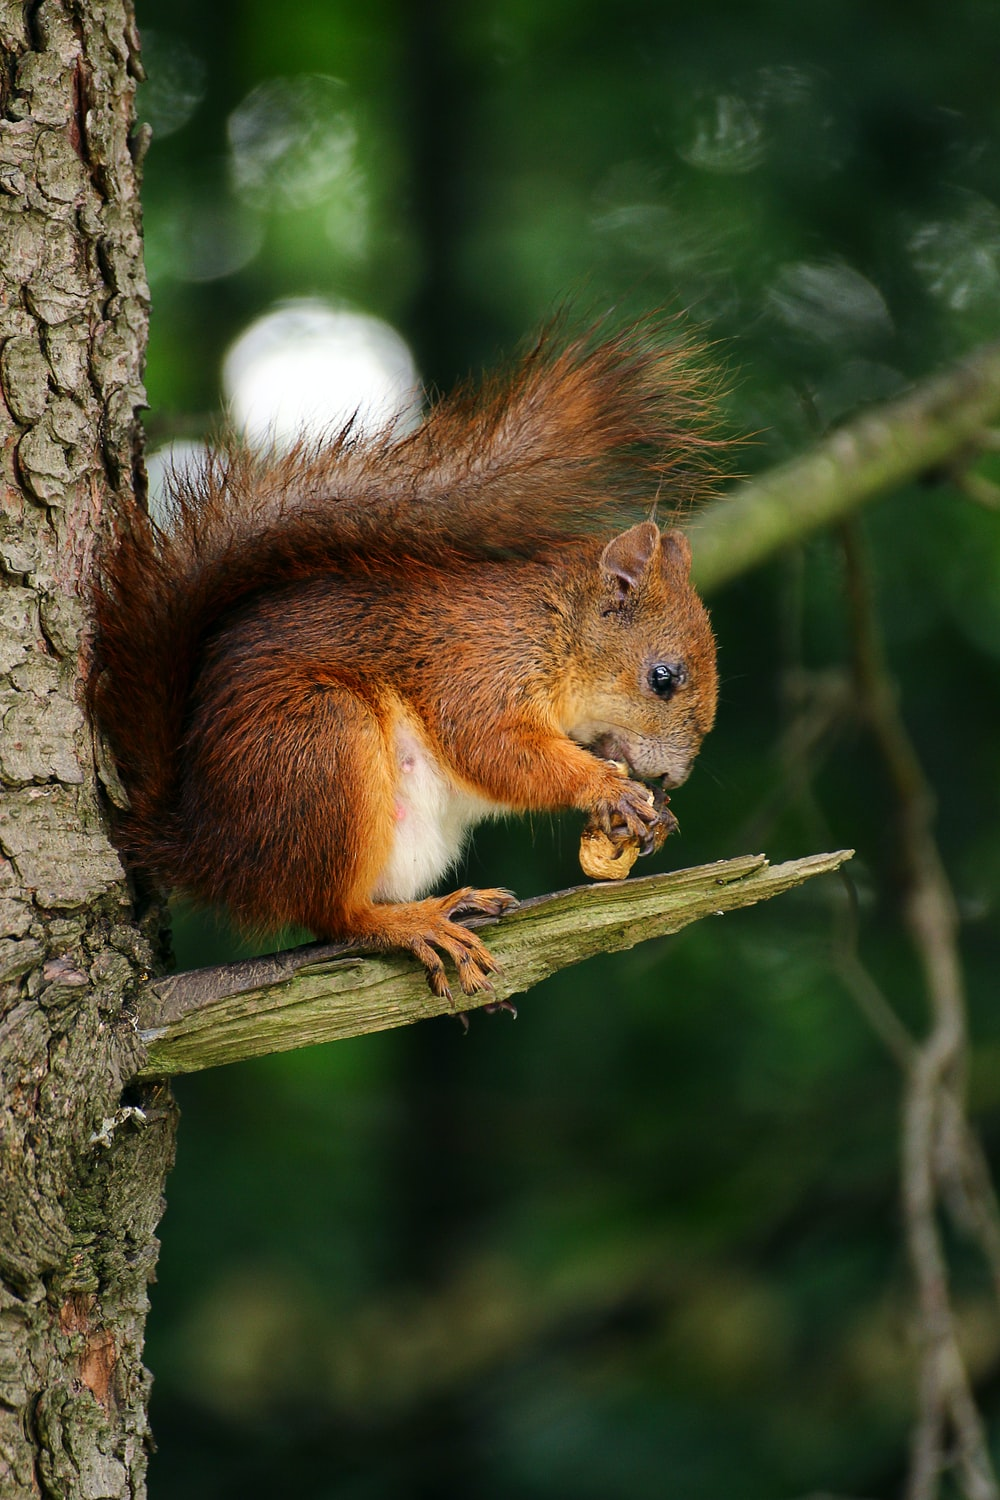 brown squirrel on branch of tree eating nut